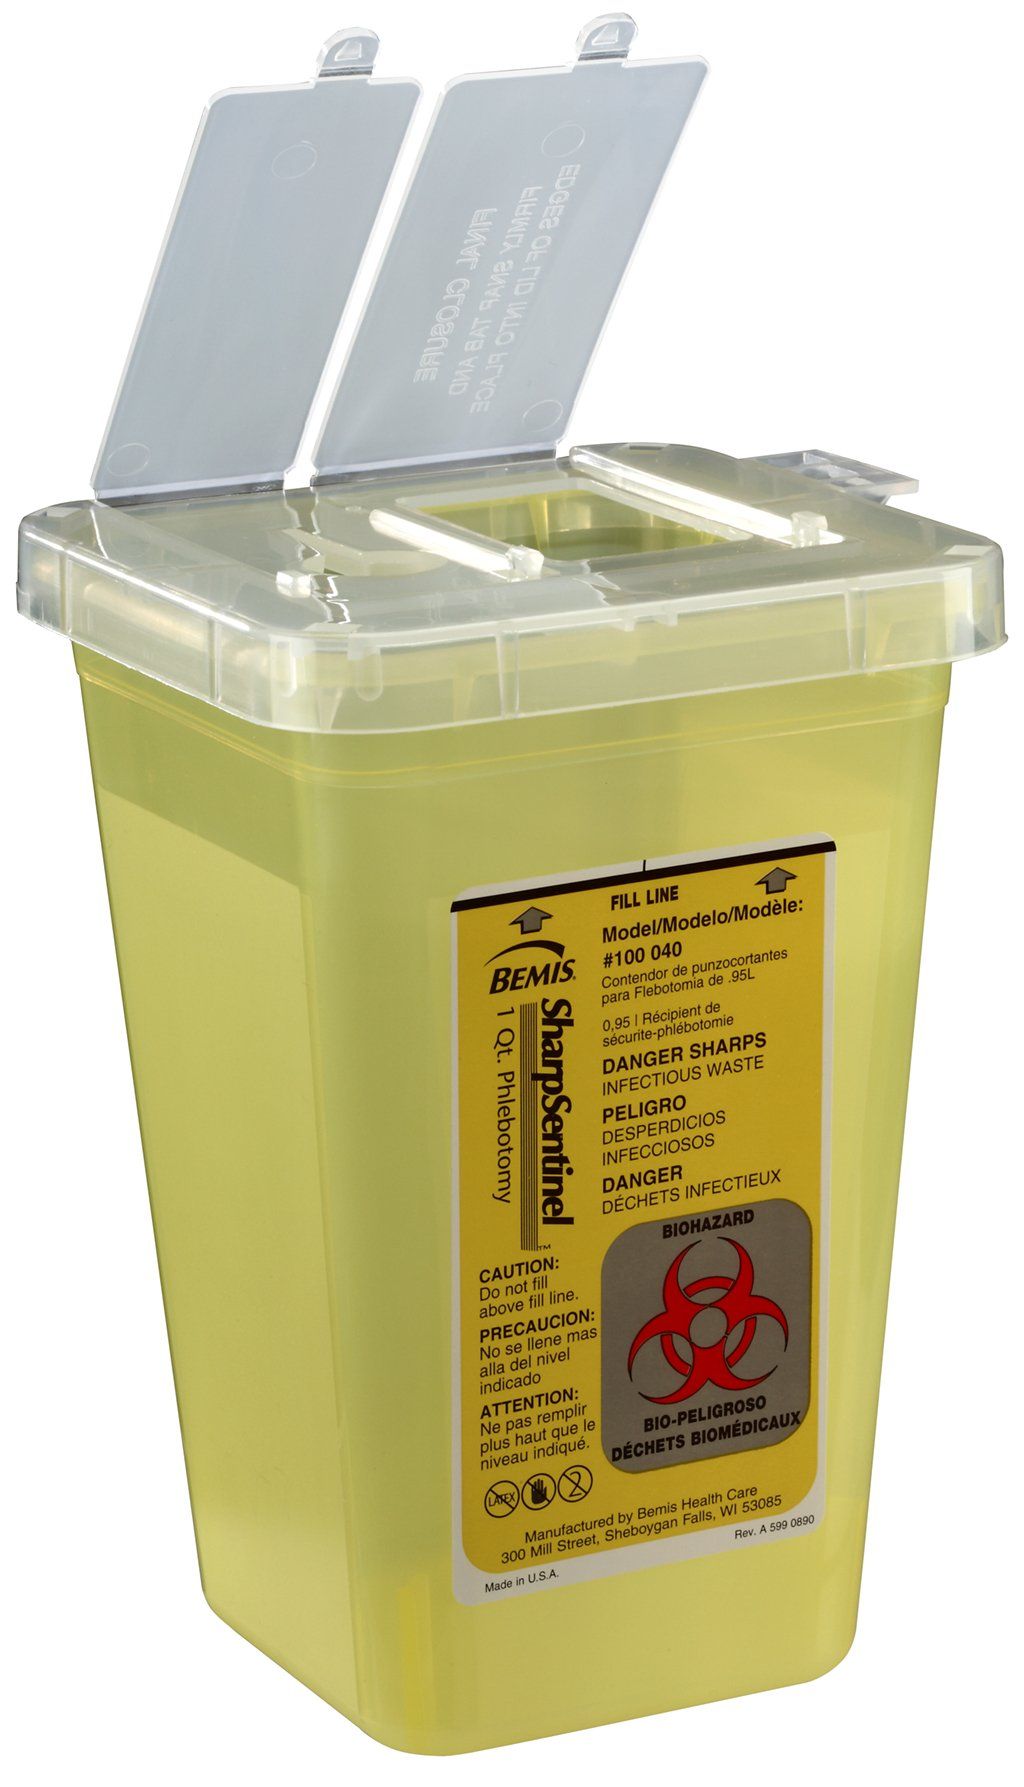 Bemis Healthcare 100040-100 1 quart Phlebotomy Container, Translucent Yellow (Pack of 100)